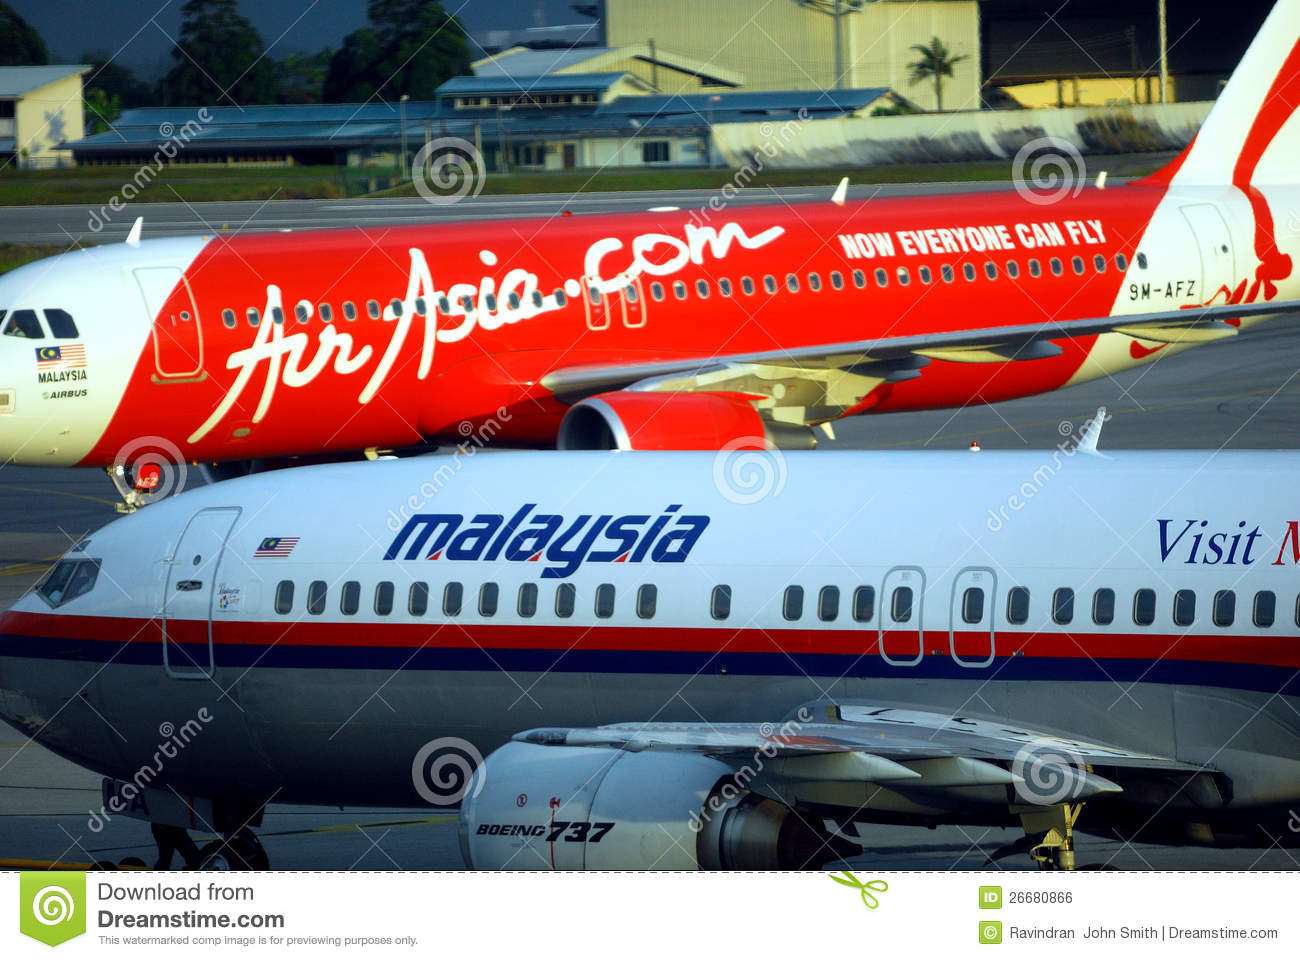 process of organization air asia Airasia thailand will start the audit process in august and it will take 12 months other members of the group will follow the airline group has certainly had some bad press particularly in australia where a string of incidents, some serious, has focused attention on the airline's systems, pilot training and culture.